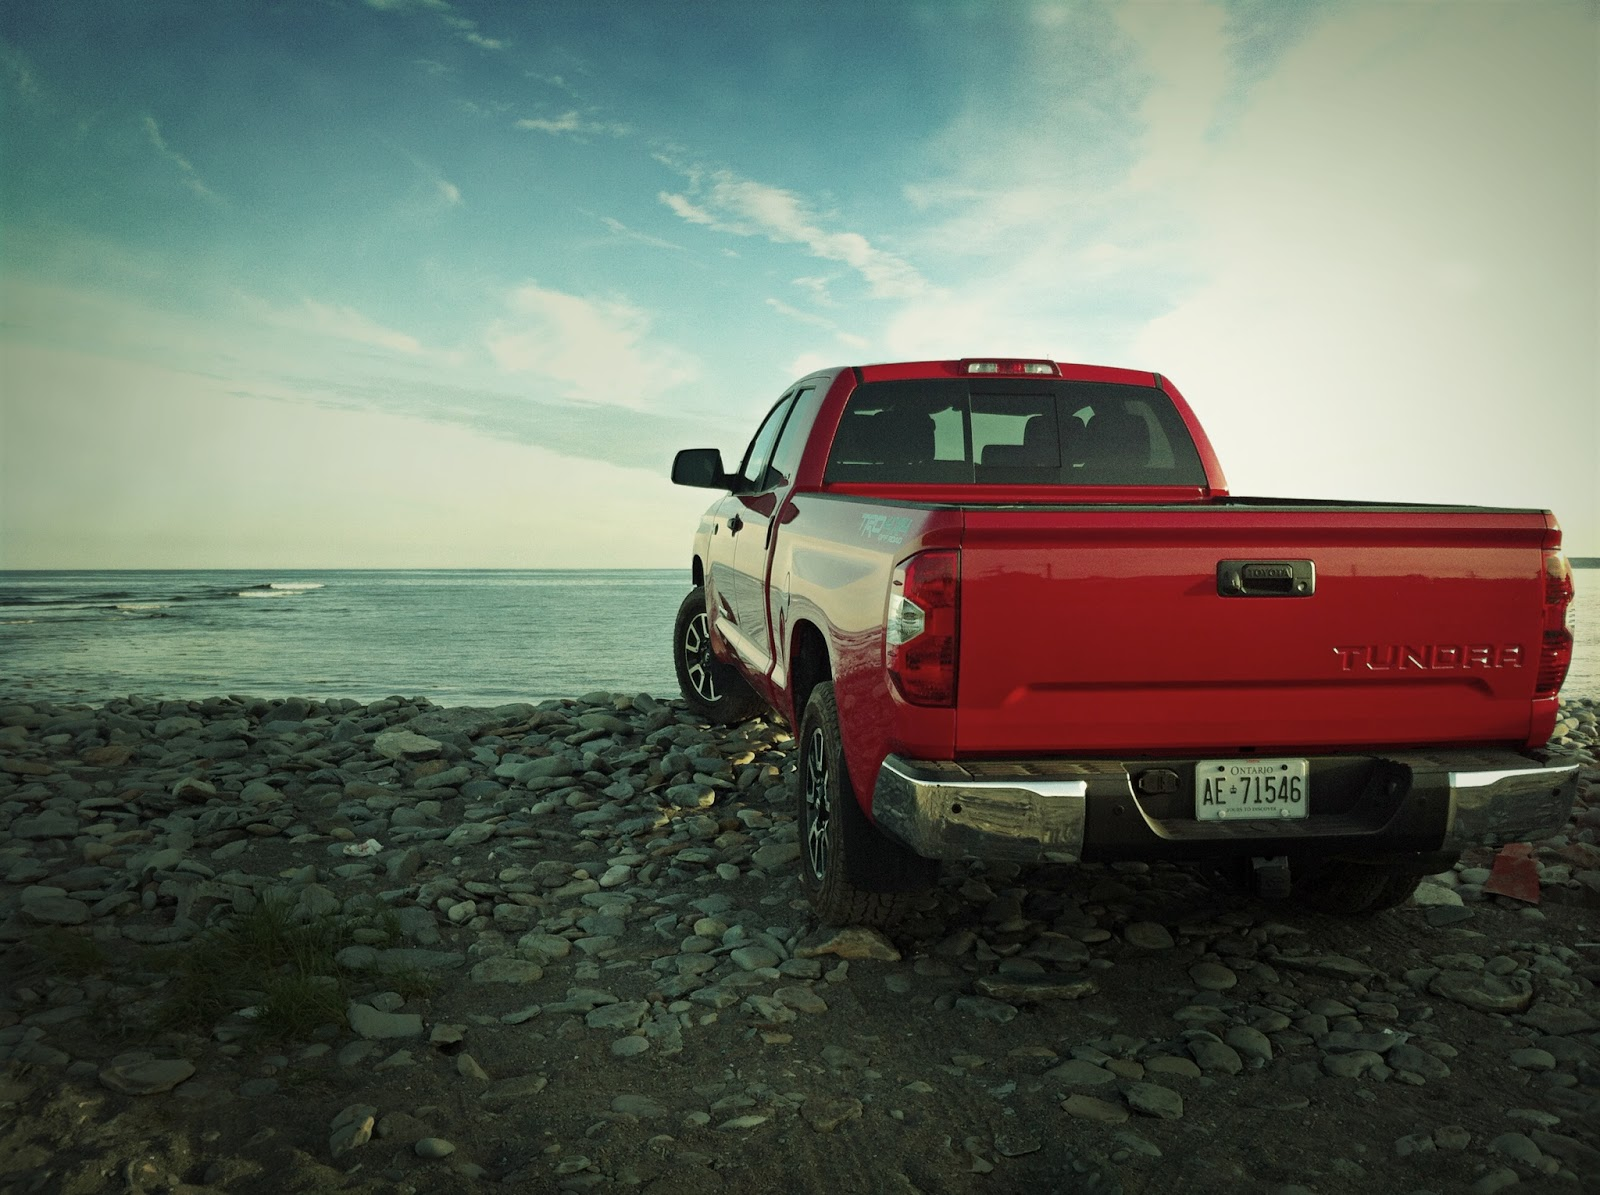 2014 Toyota Tundra red double cab beach